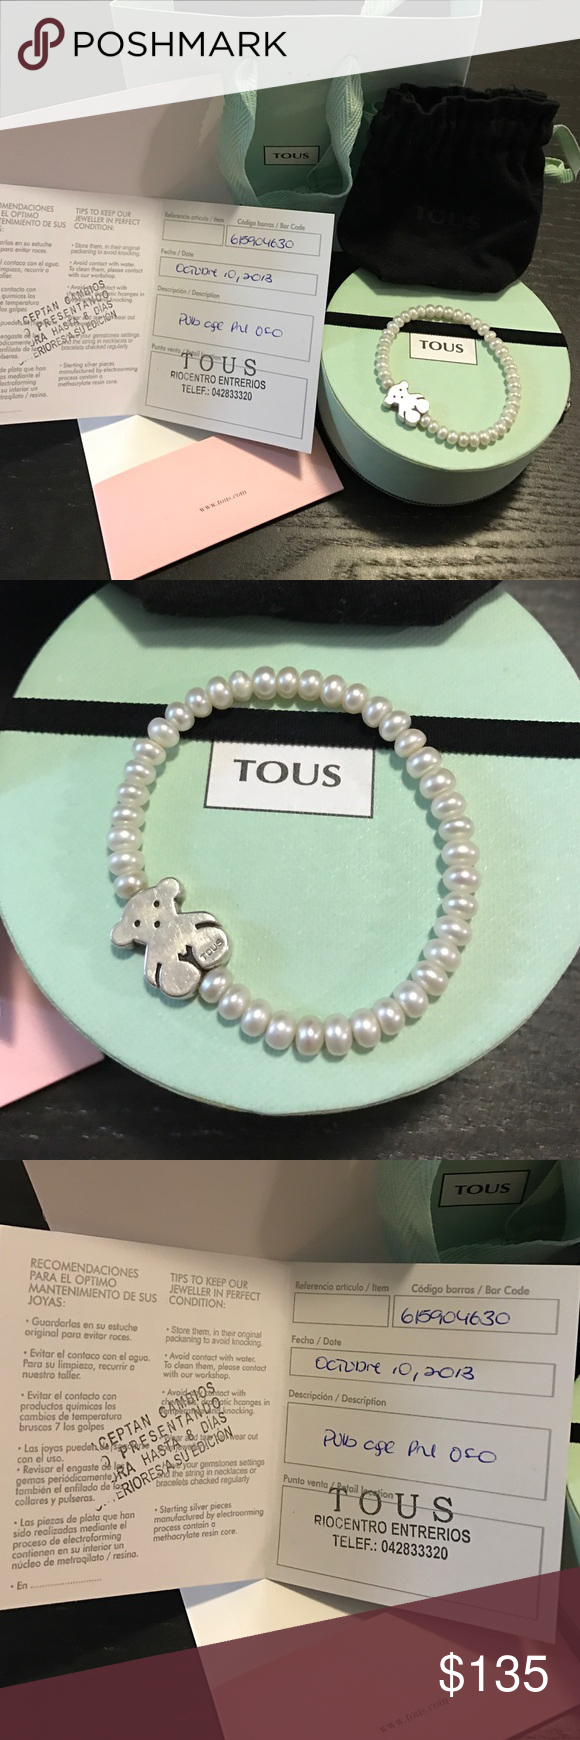 Silver Tous Bear Bracelet With Pearl Great Condition Comes With Bag Box And Certificate Tous Jewelry Bracele Tous Jewelry Fashion Accessories Clothes Design